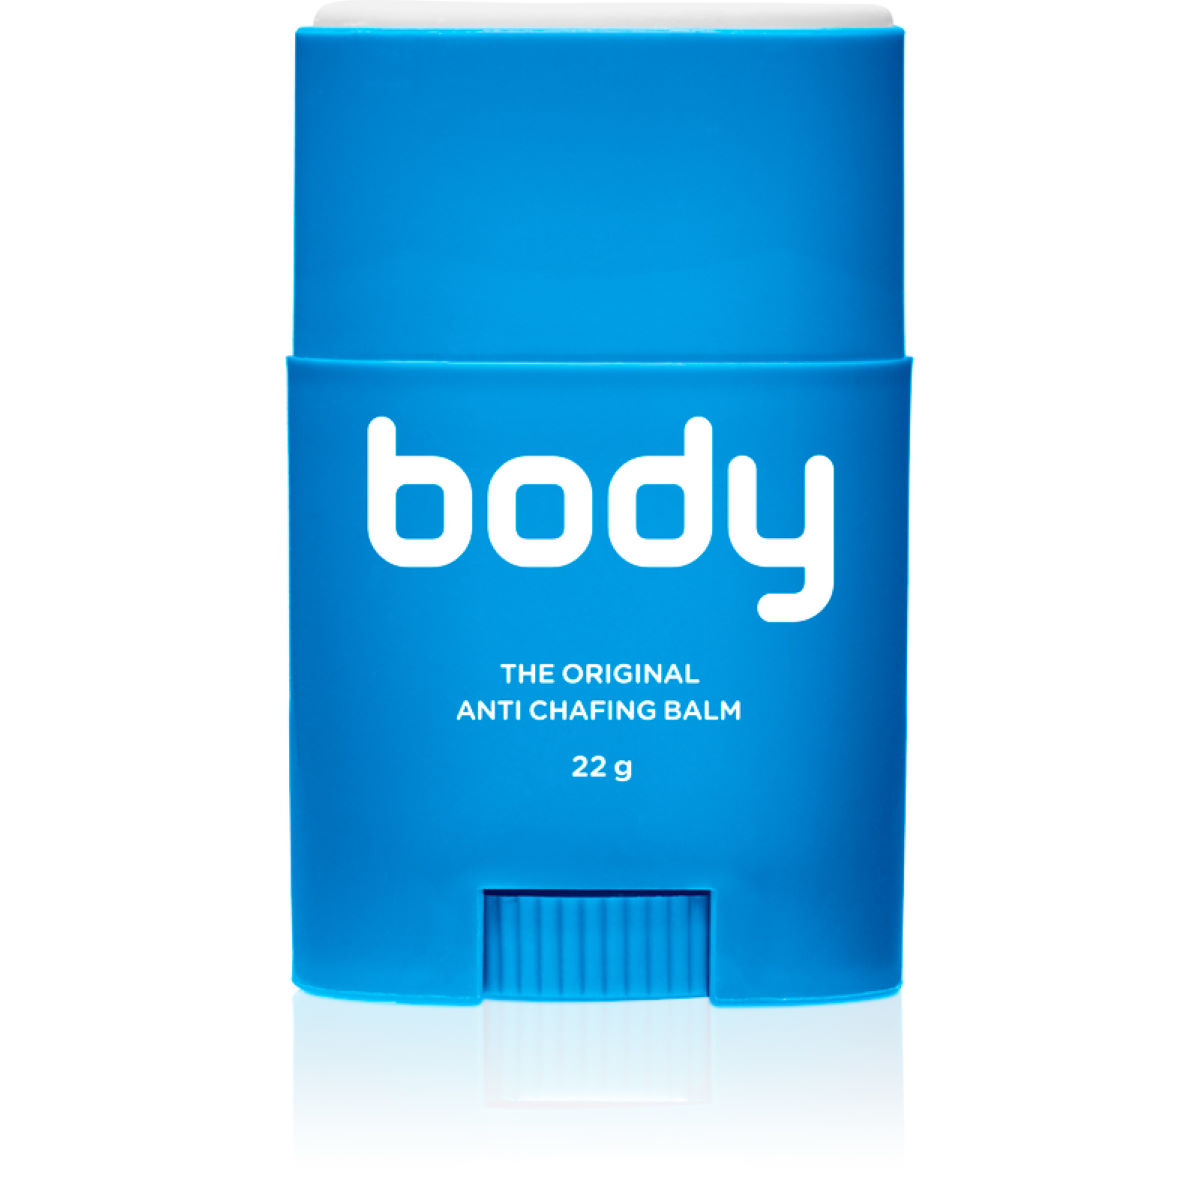 Bodyglide Bodyglide Anti-chafing balm (22g)   Chafing Solutions